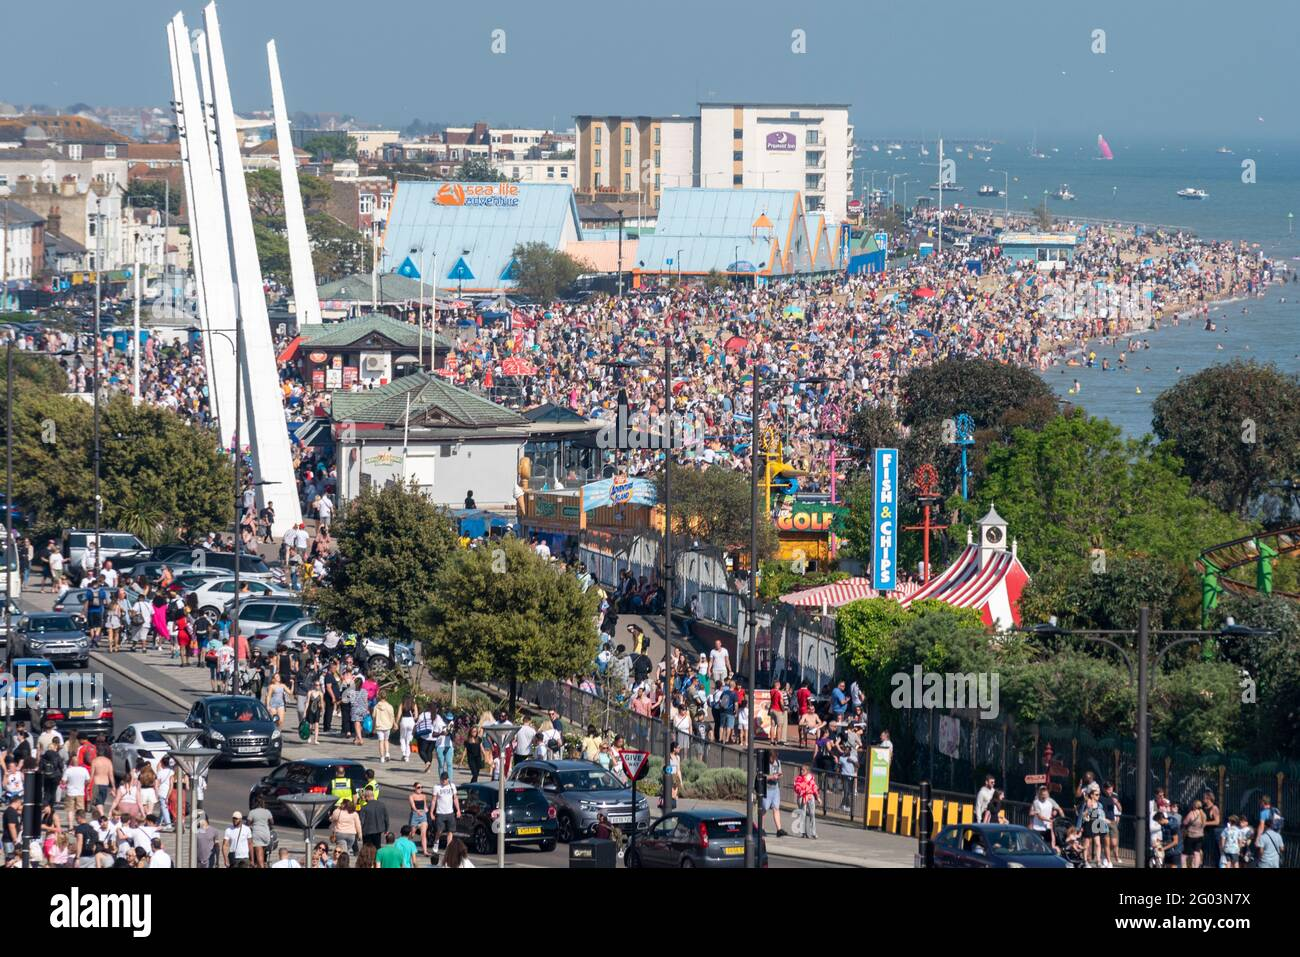 southend-on-sea-essex-uk-31st-may-2021-the-warm-sunny-weather-has-attracted-people-to-the-seaside-town-on-the-bank-holiday-monday-seafront-car-parks-are-full-with-long-tailbacks-of-traffic-trying-to-enter-the-town-the-beaches-and-seafront-promenades-are-packed-with-visitors-2G03N7X.jpg